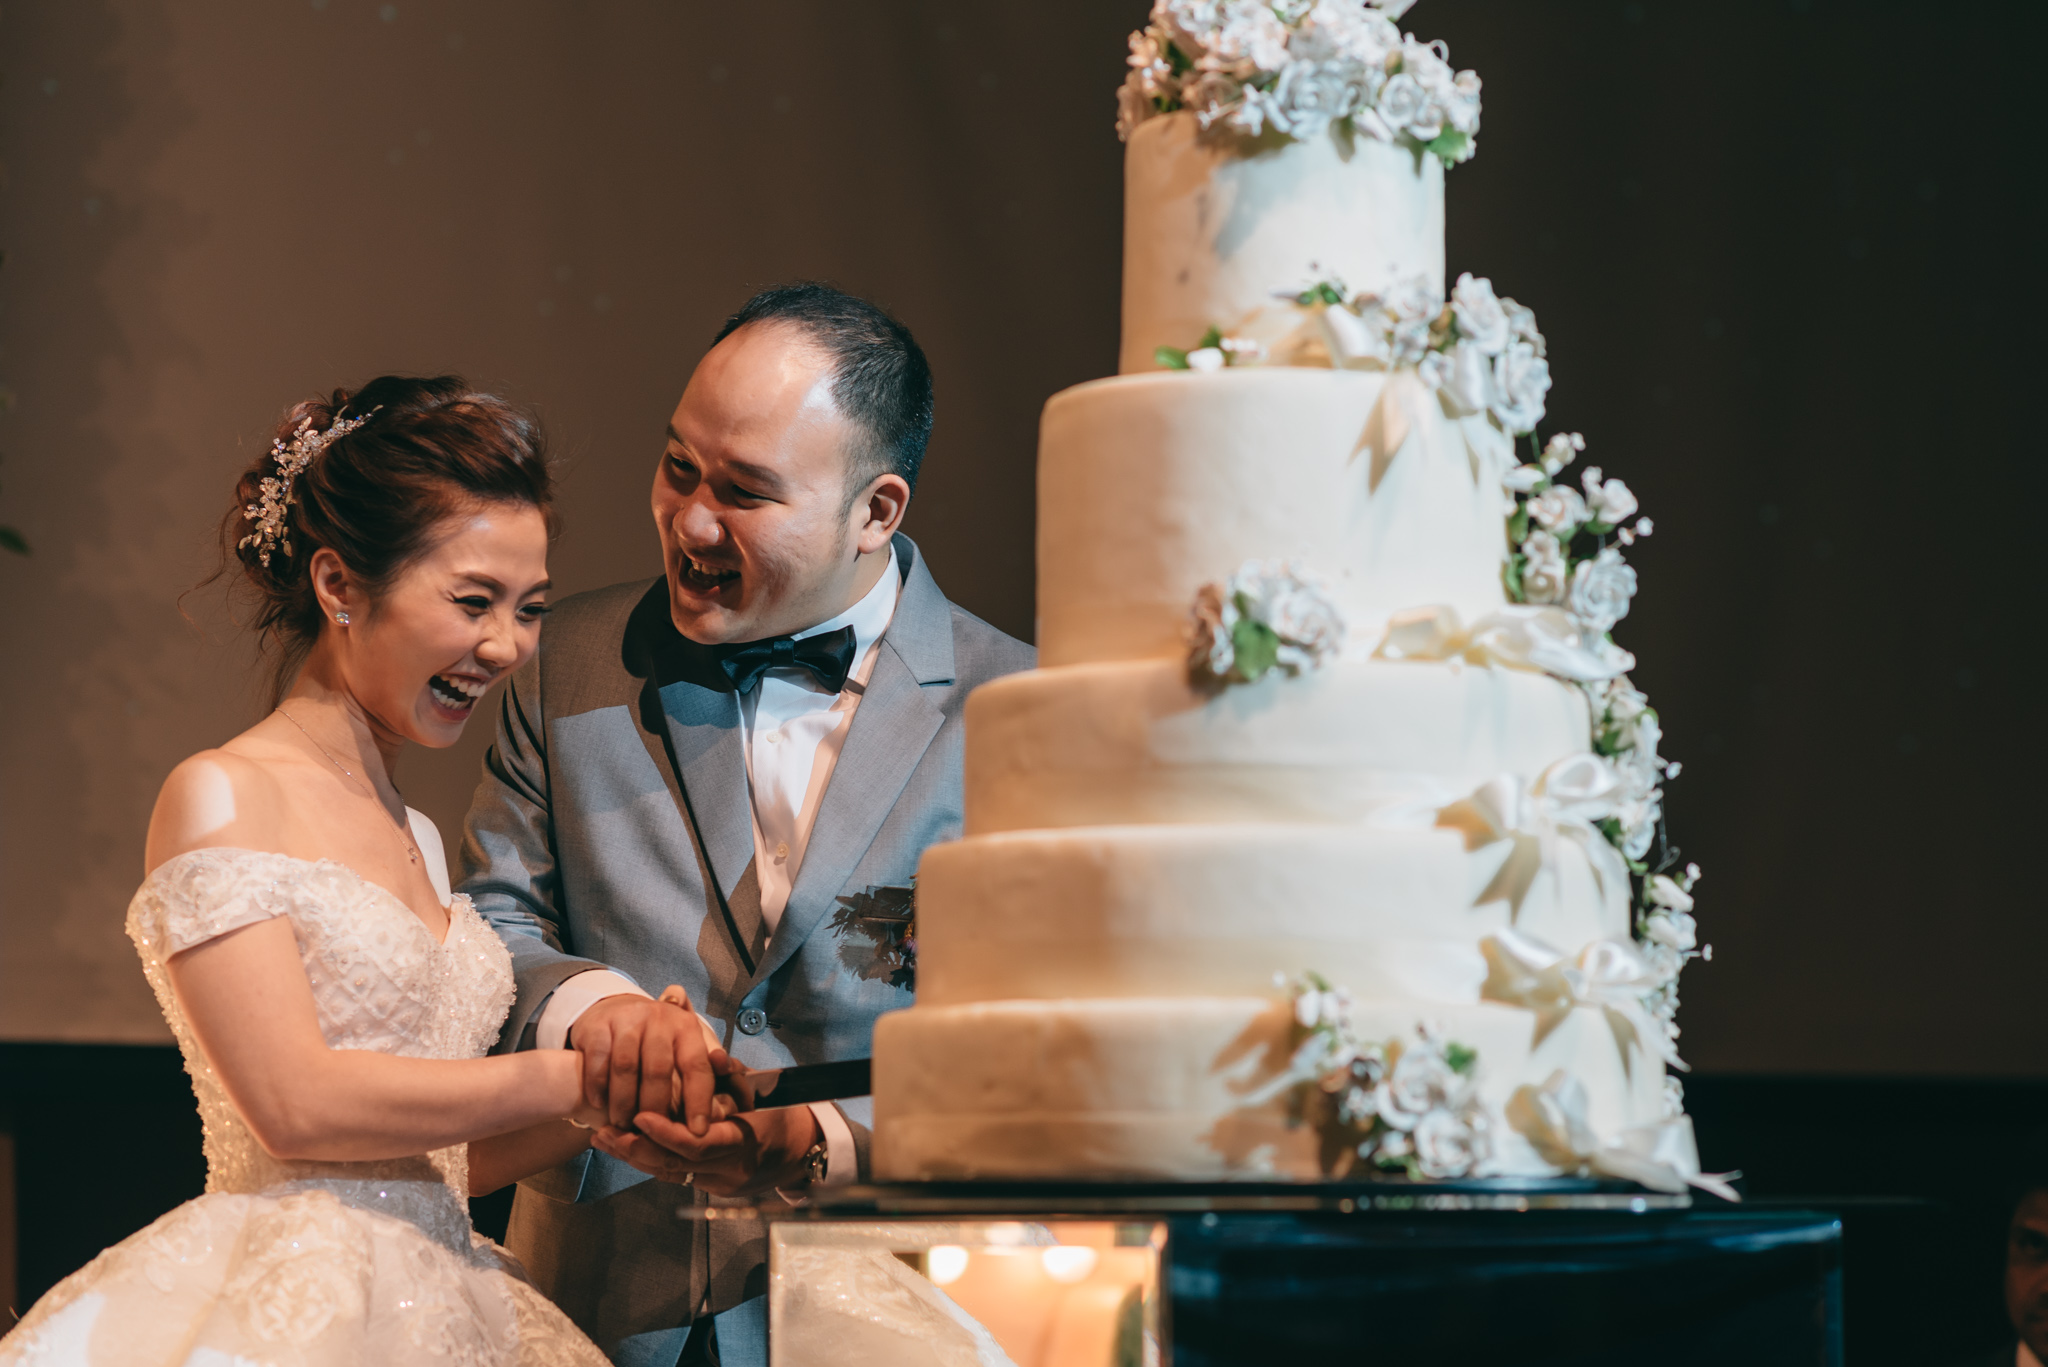 Eunice & Winshire Wedding Day Highlights (resized for sharing) - 187.jpg